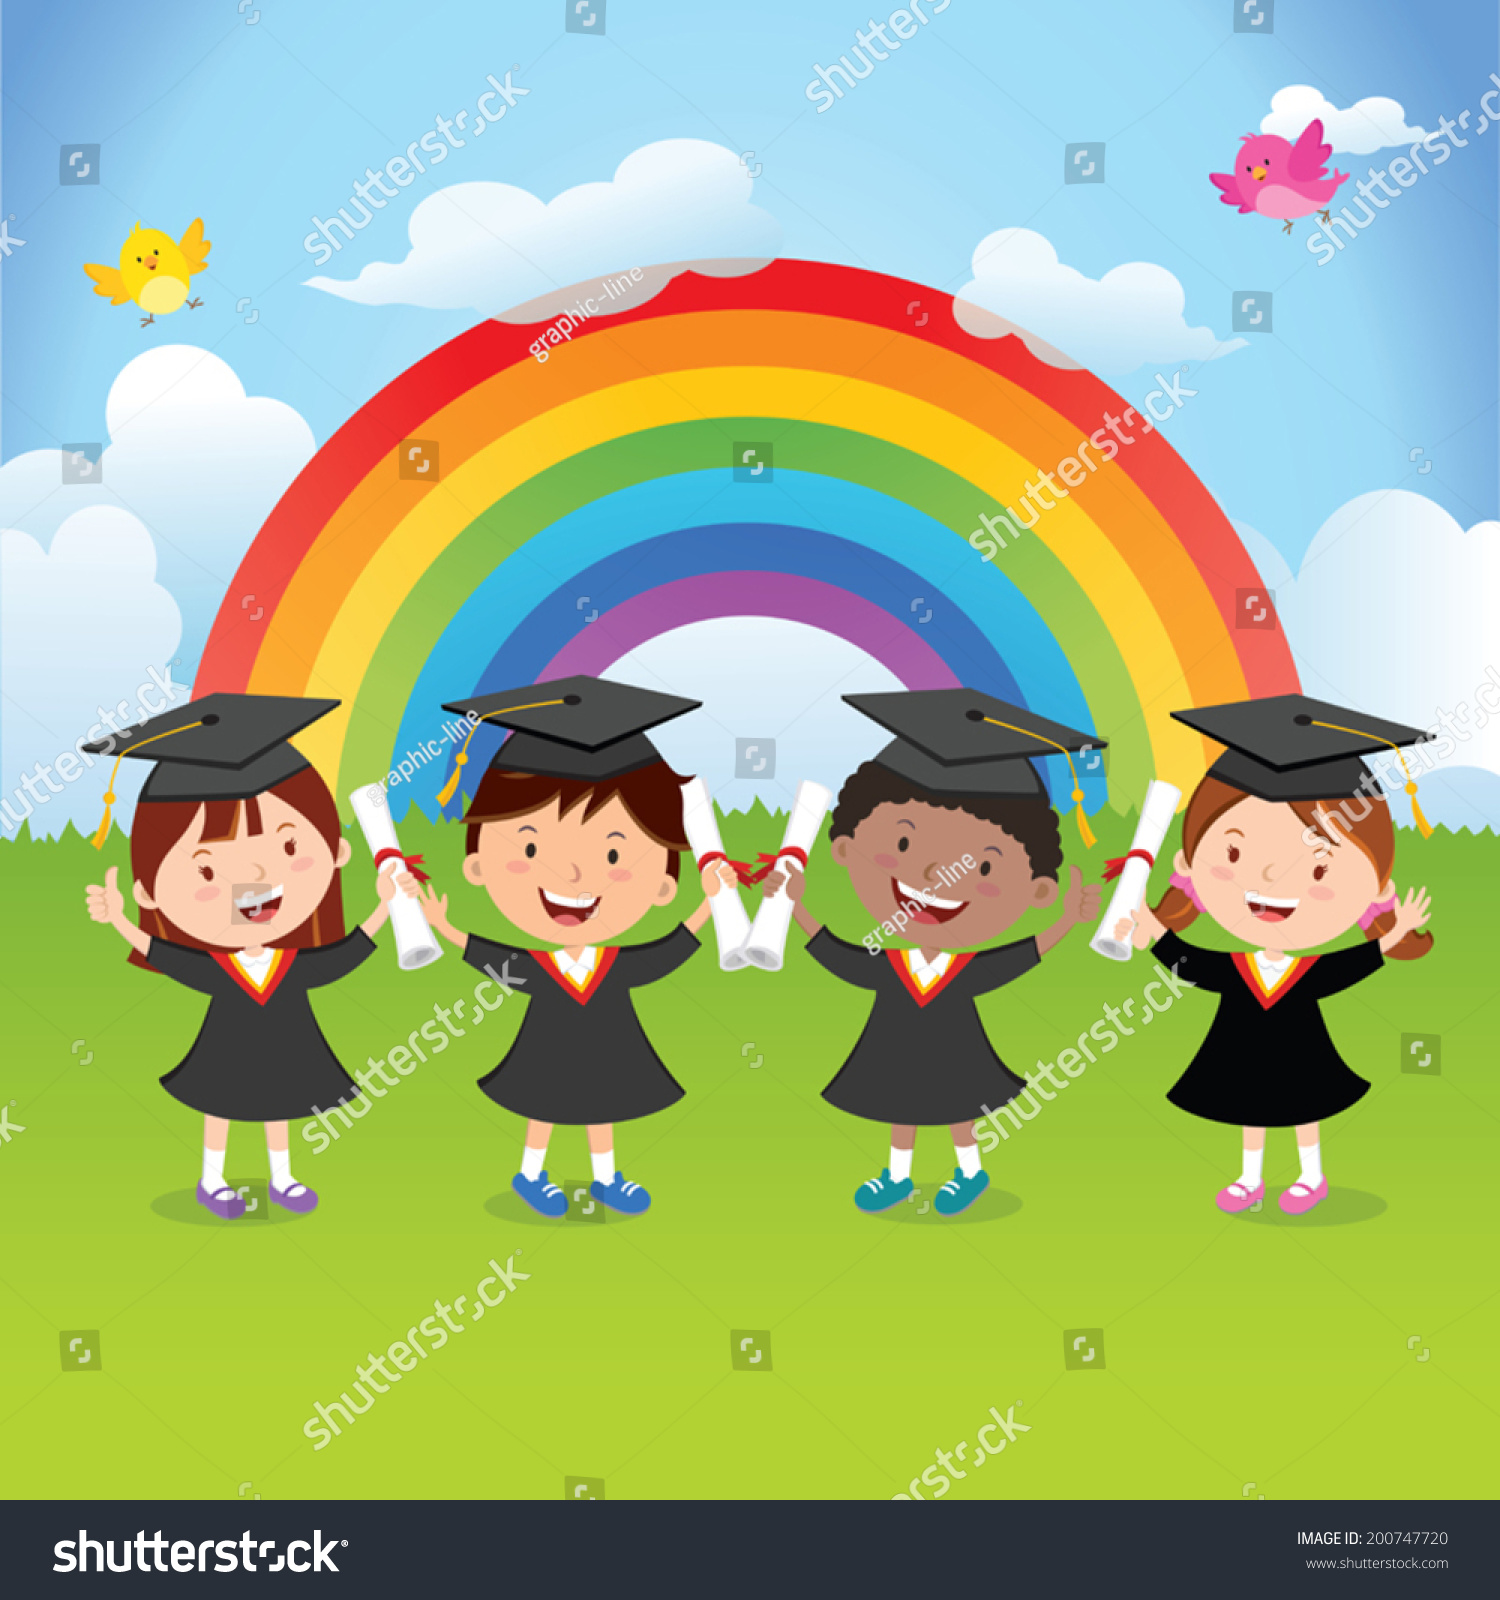 Happy Graduation Kids Rainbow Stock Vector (Royalty Free) 200747720 ...